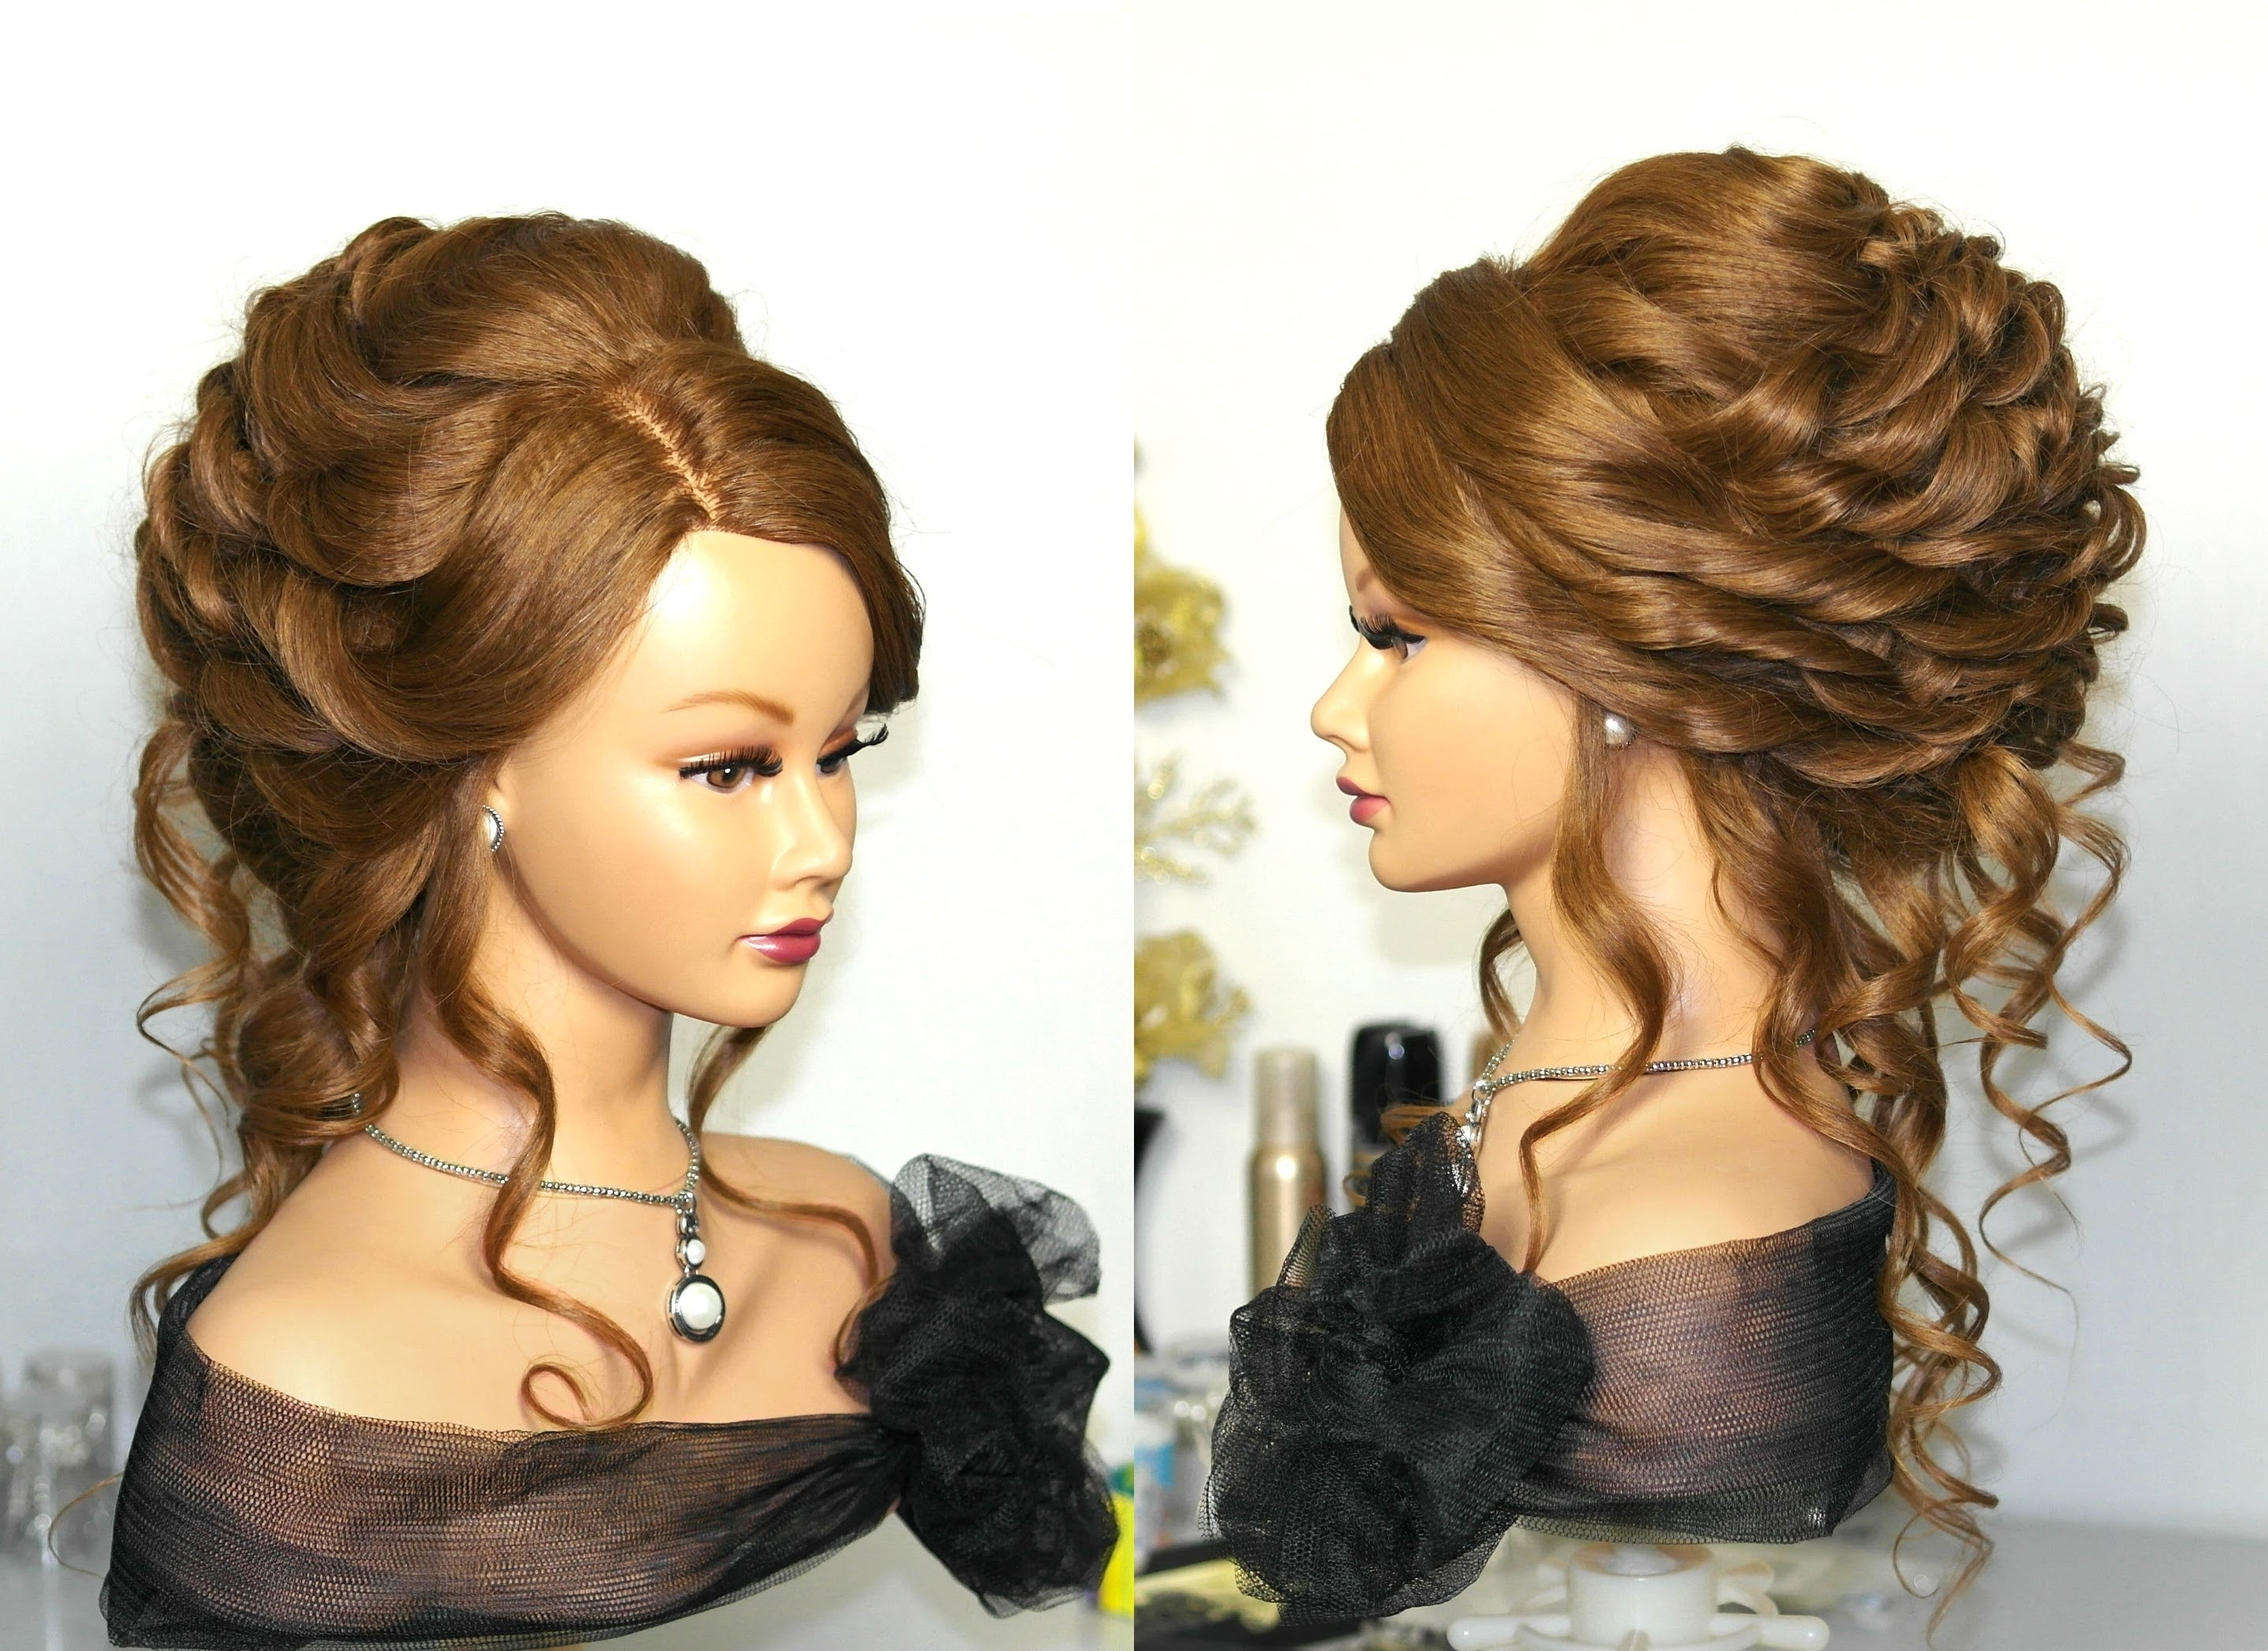 Newest Creative And Elegant Wedding Hairstyles For Long Hair Within Wdding Hairdos For Long Hair Elegant Wedding Hairstyles For Long (View 7 of 15)